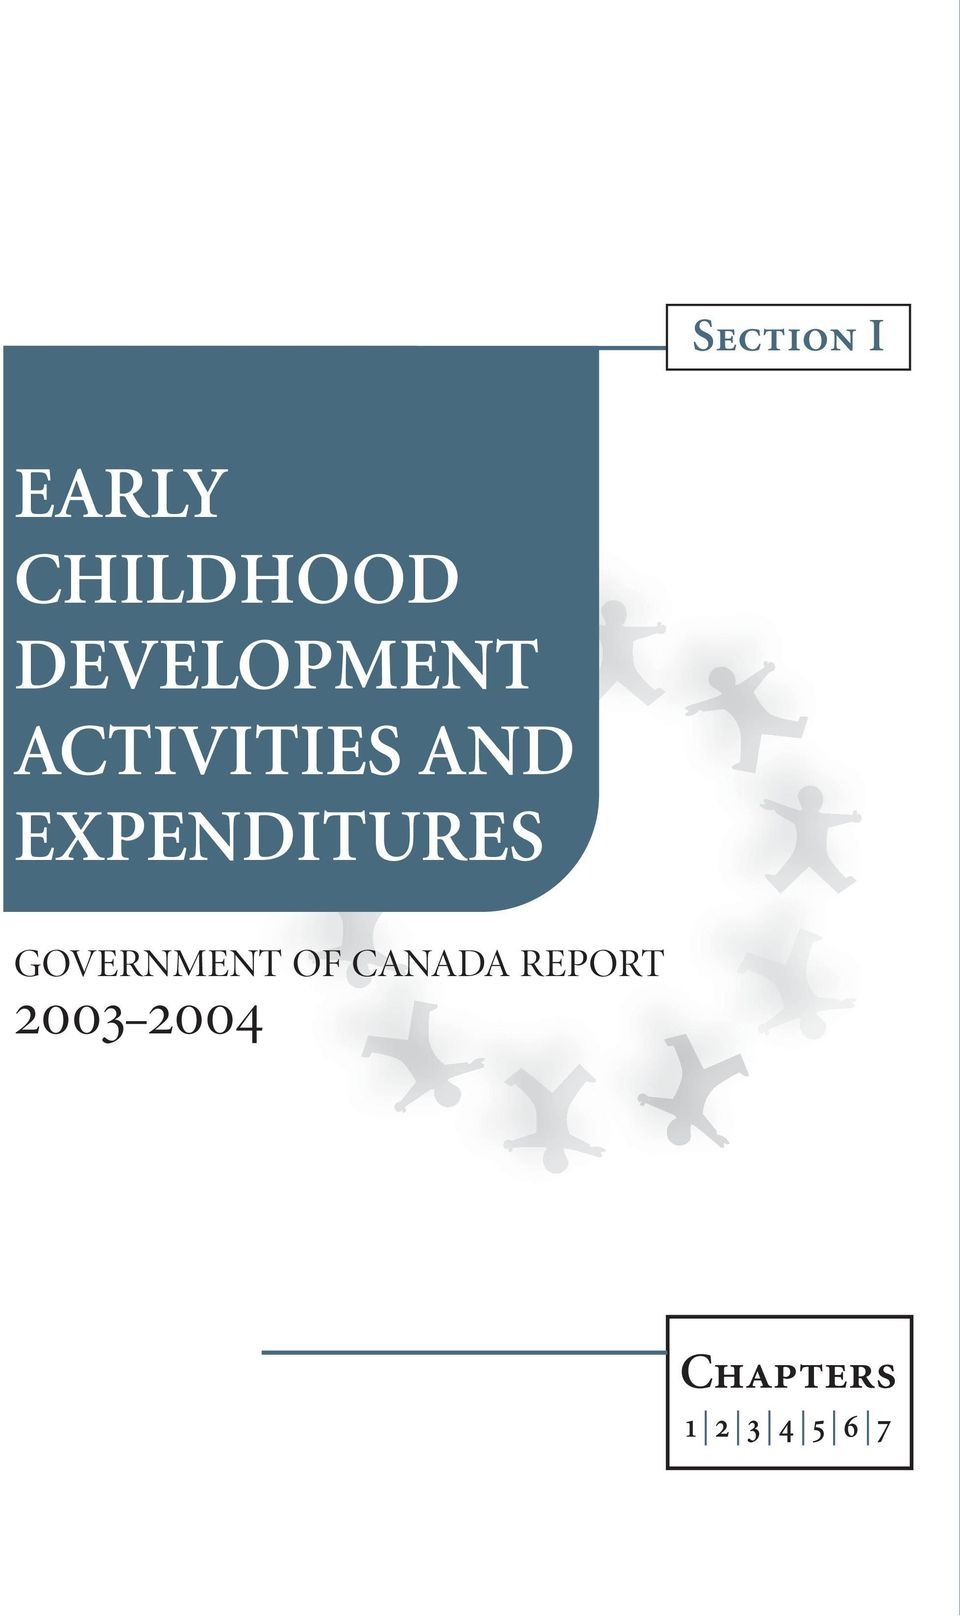 EXPENDITURES GOVERNMENT OF